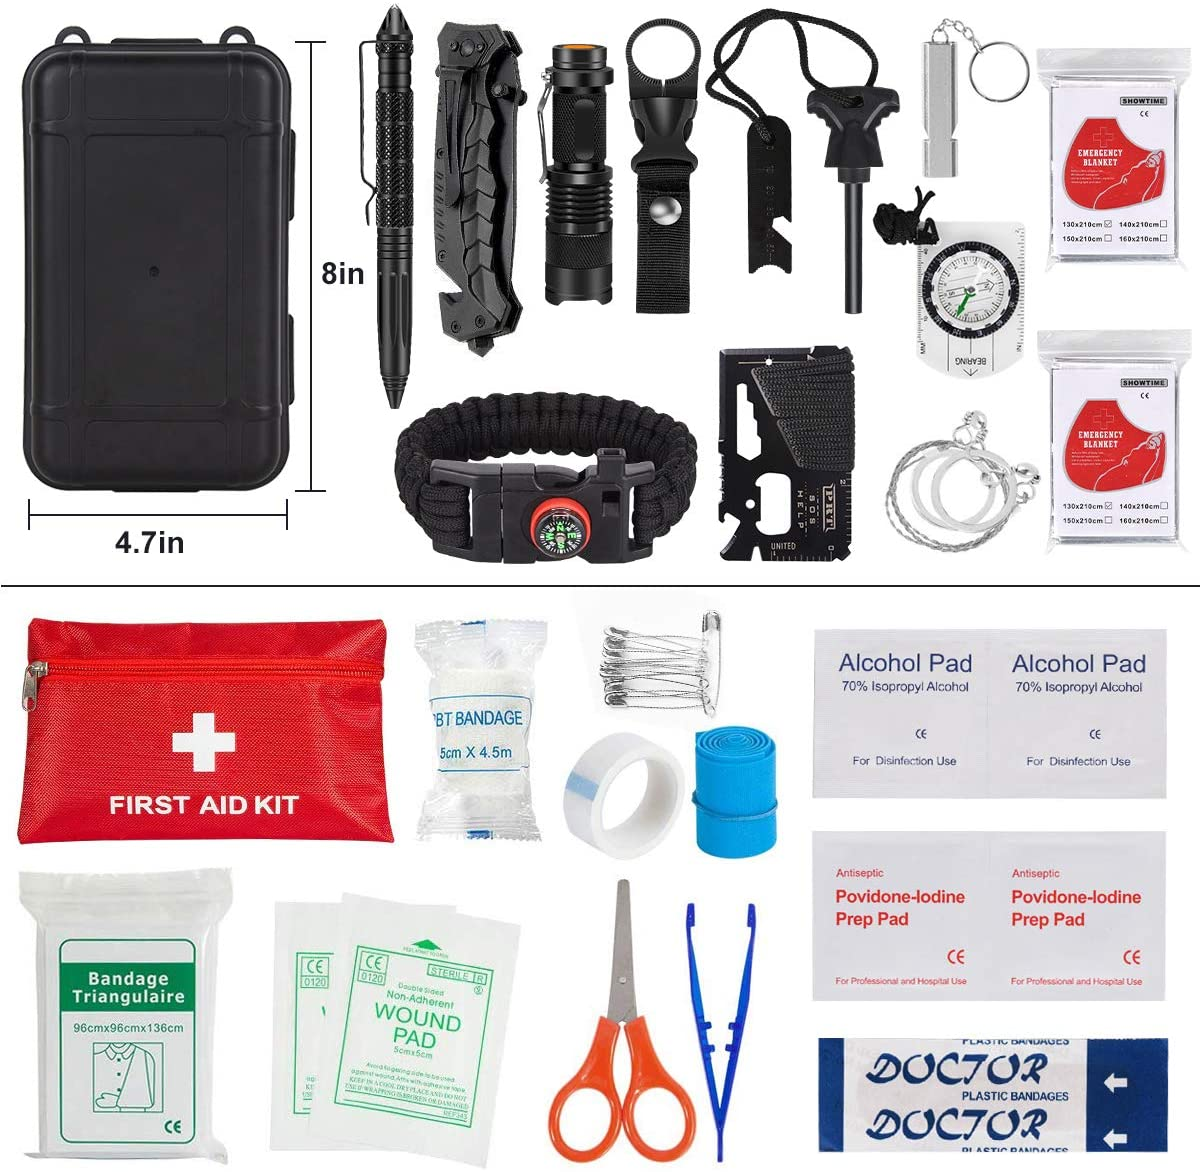 Vegan Club Survival Kit with Fist Aid Kit, Life Straw, Mask & Stickers + optional Food Supply